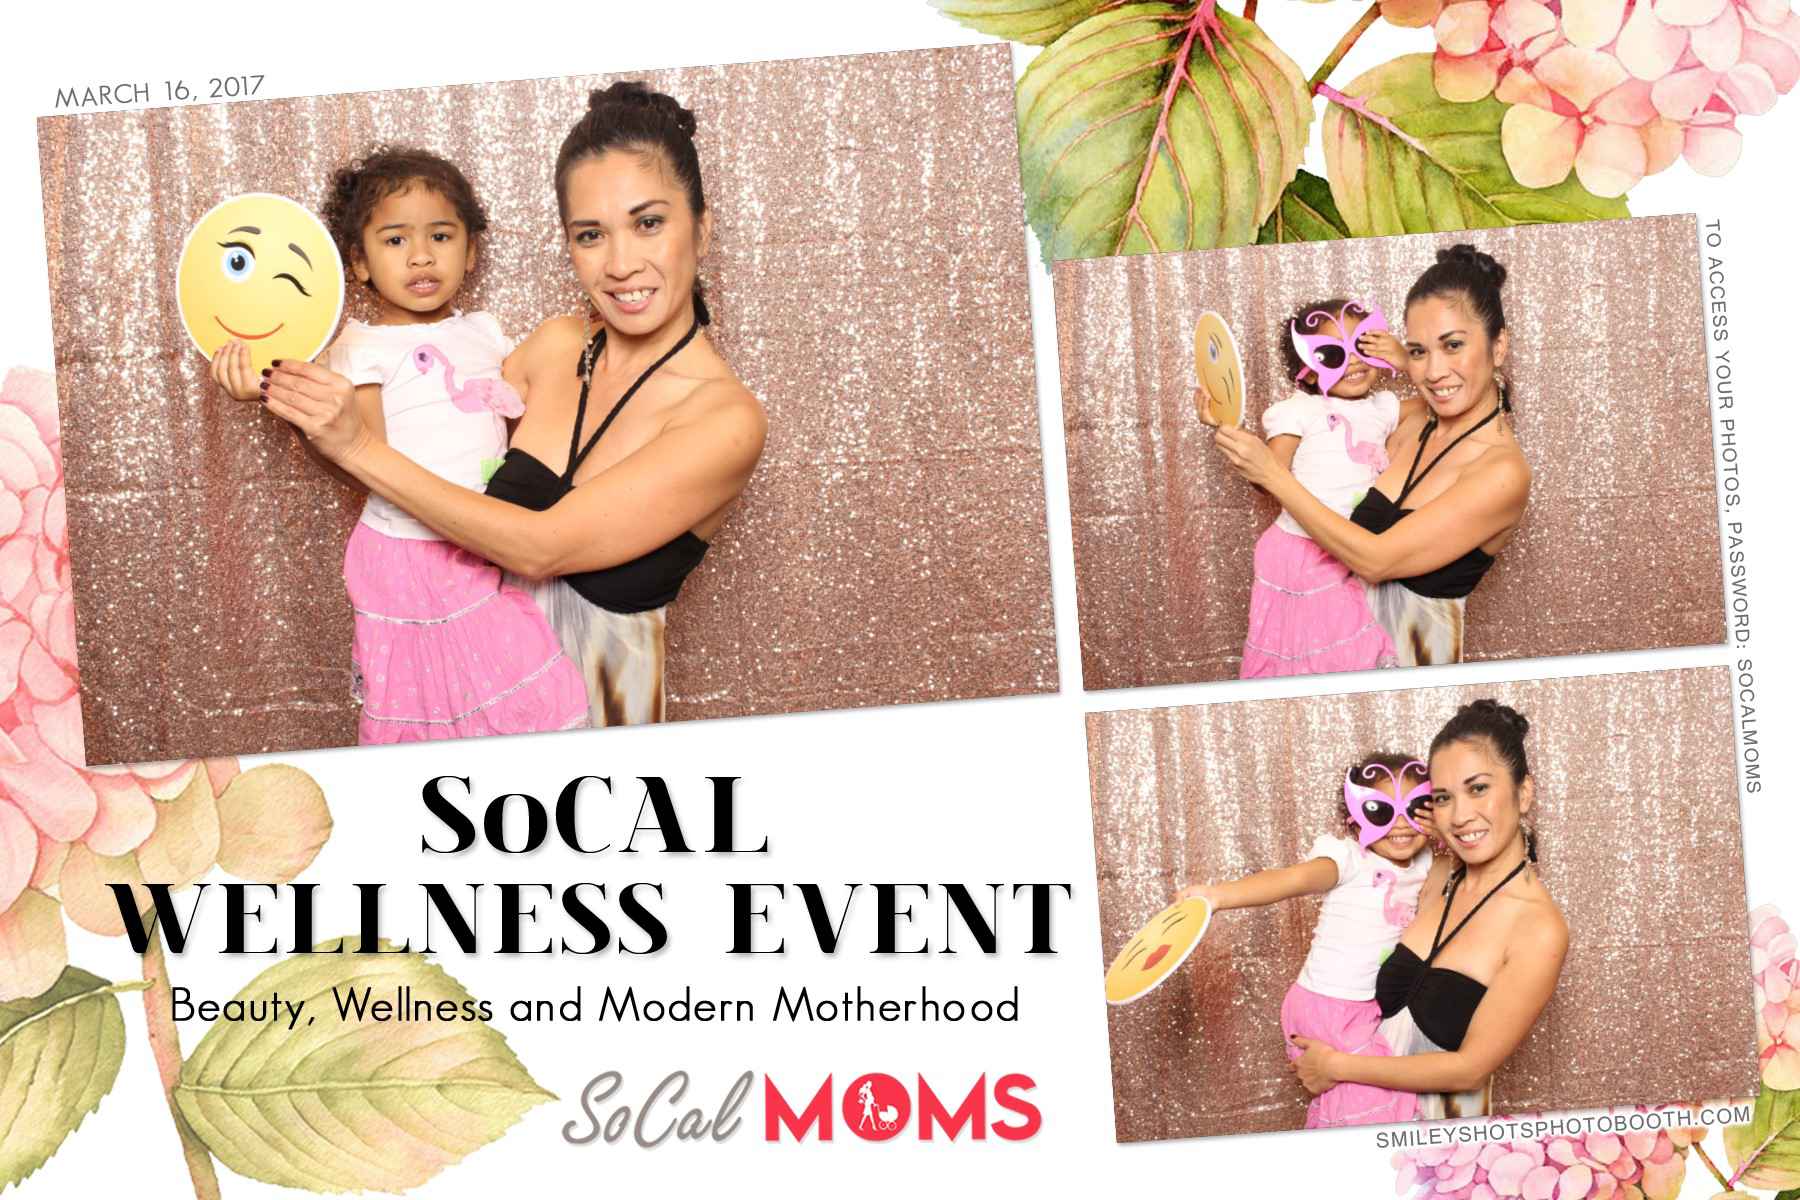 Socal Wellness Event Socal Moms Smiley Shots Photo Booth Photobooth (6).png